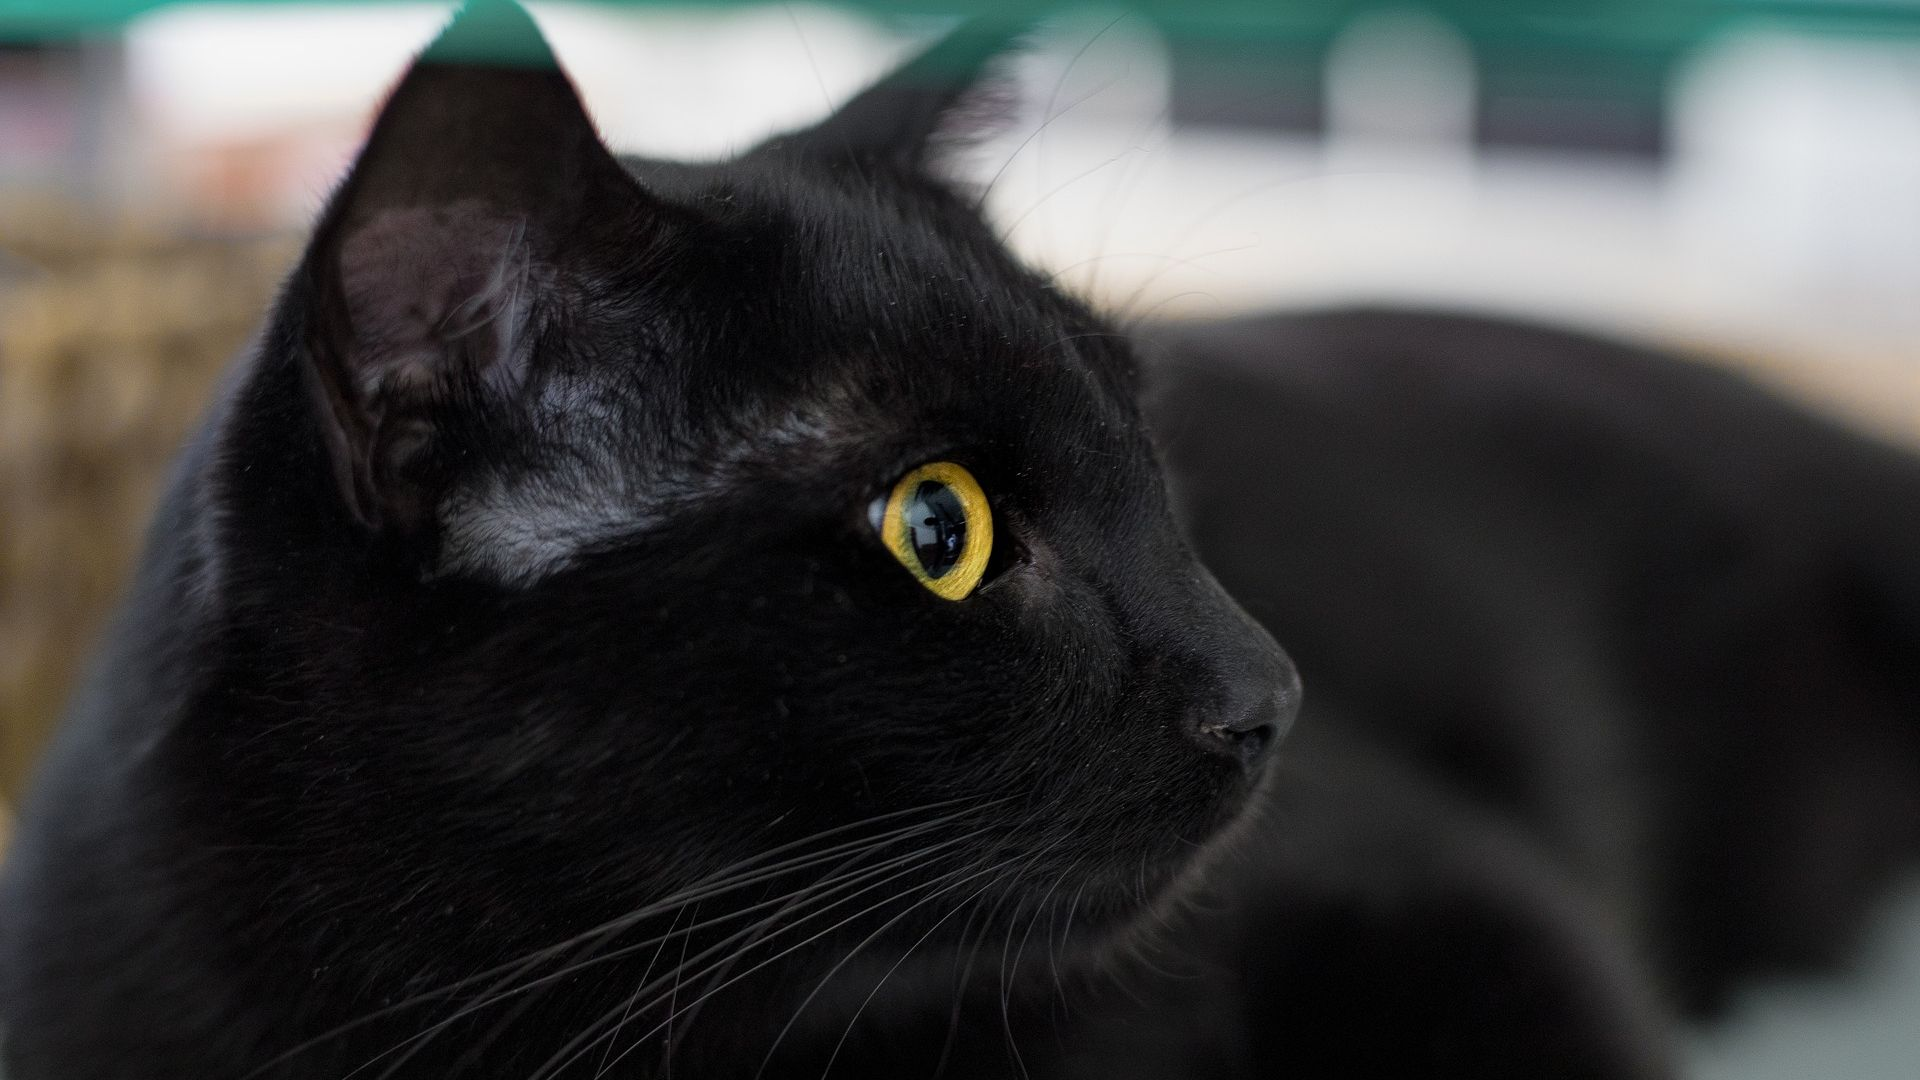 Desktop Wallpaper Black Cat Stare Muzzle Fur Yellow Eyes Hd Image Picture Background 077f06